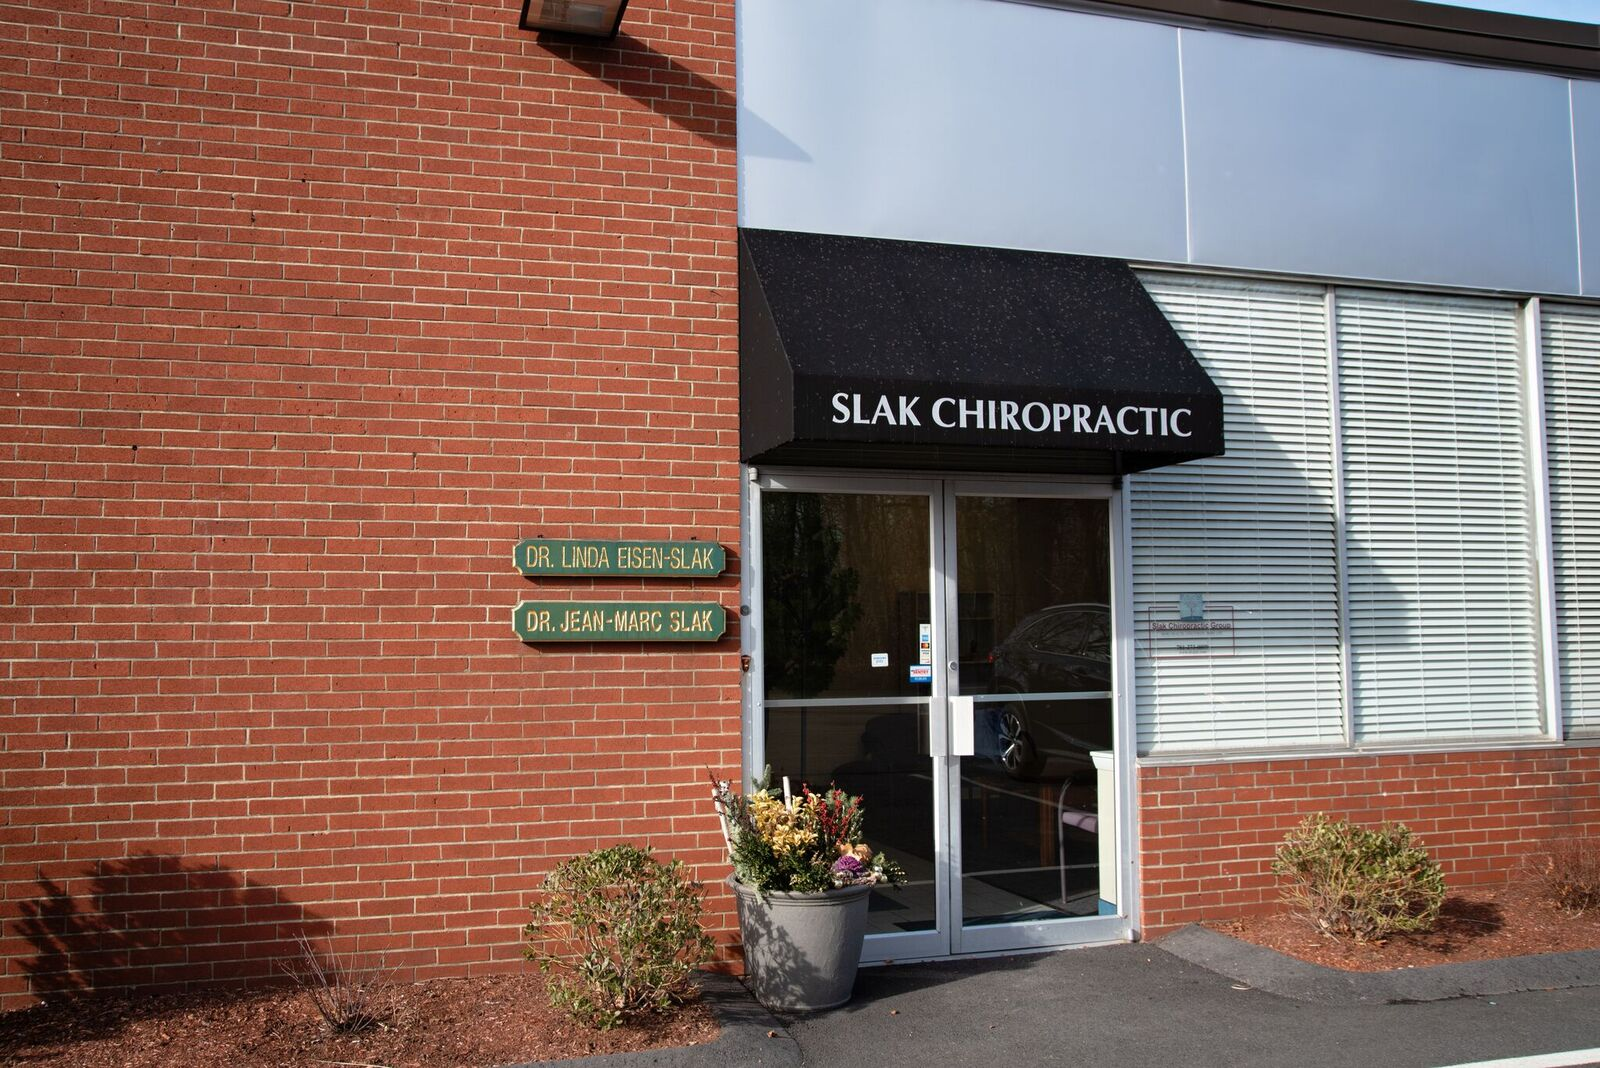 Lexington - Burlington - Chiropractic - Slak